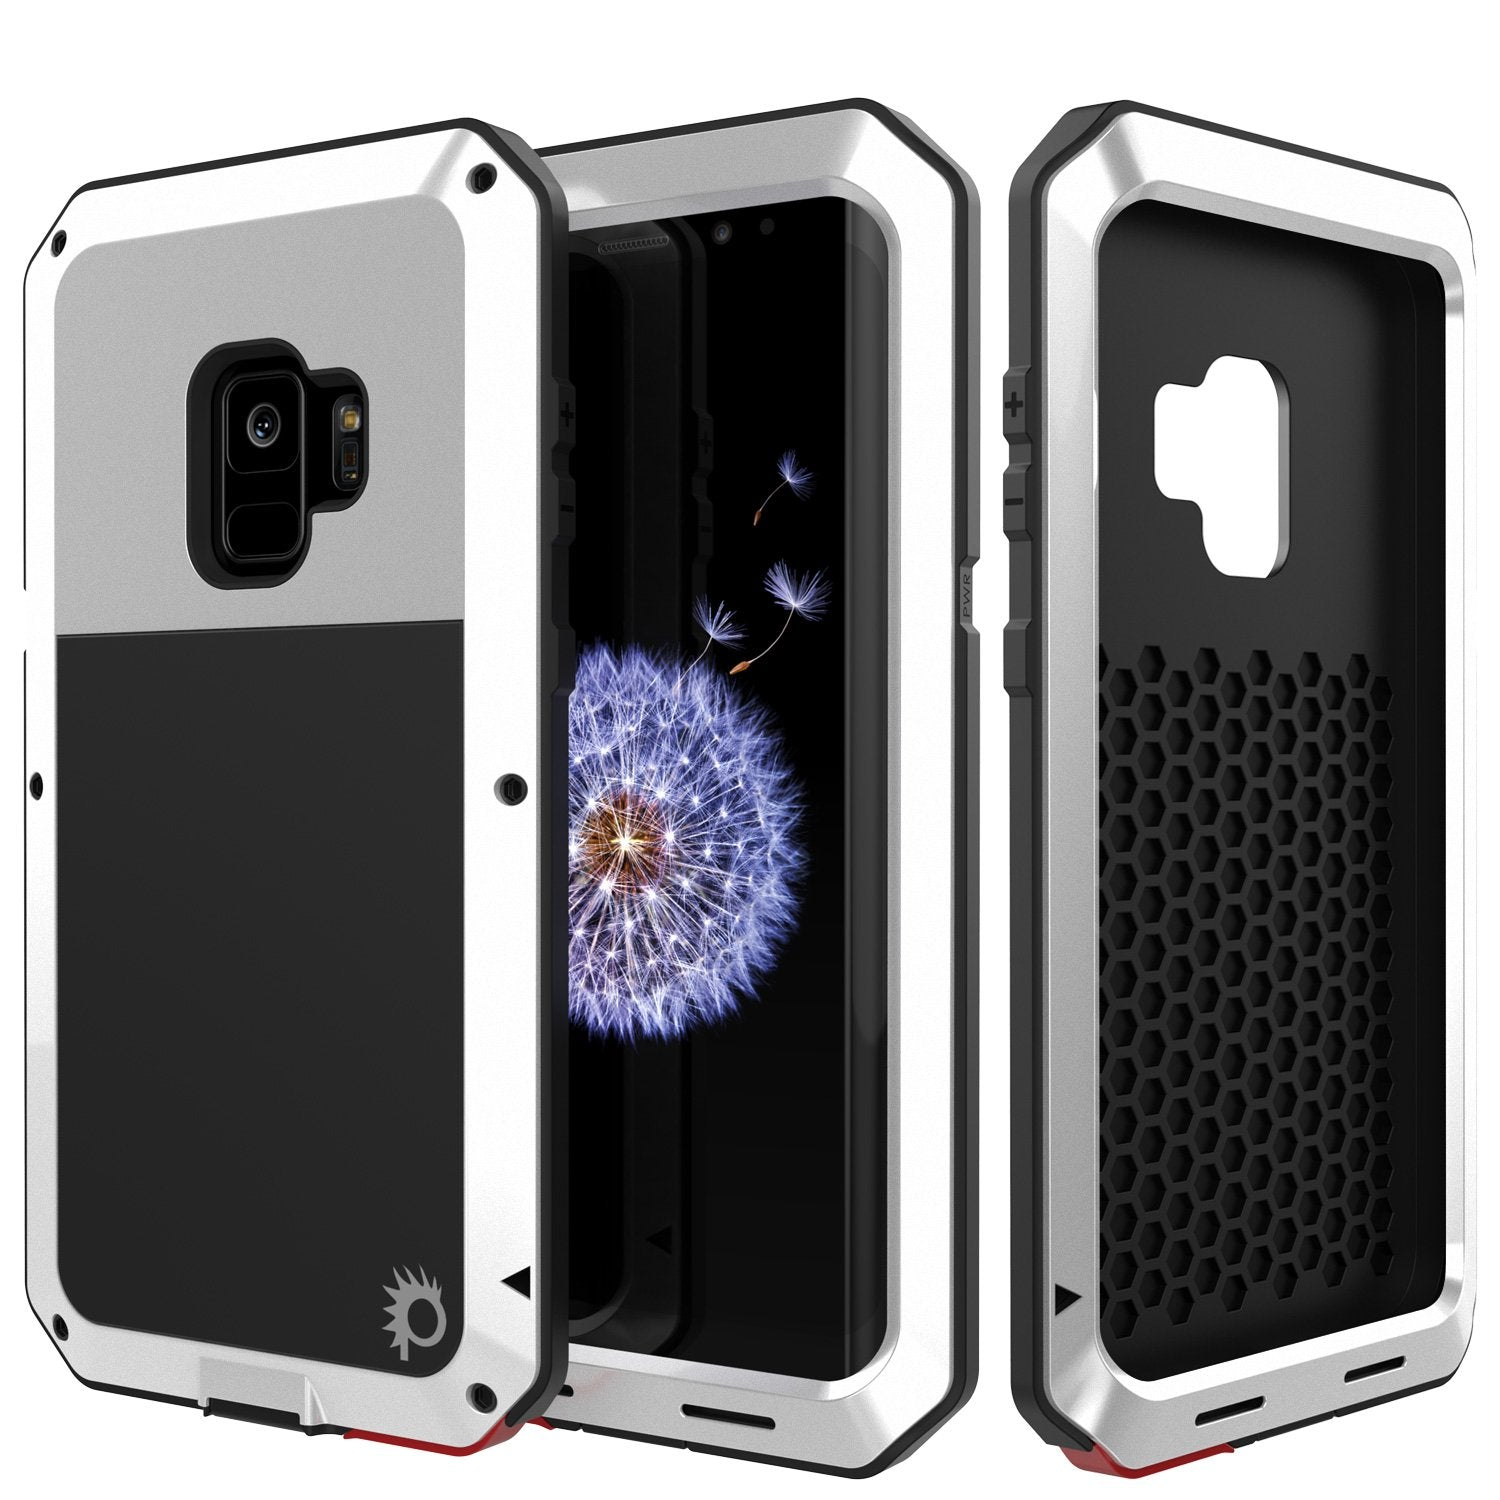 Galaxy S9 Metal Case, Heavy Duty Military Grade Rugged Armor Cover [shock proof] Hybrid Full Body Hard Aluminum & TPU Design [non slip] W/ Prime Drop Protection for Samsung Galaxy S9 [White]